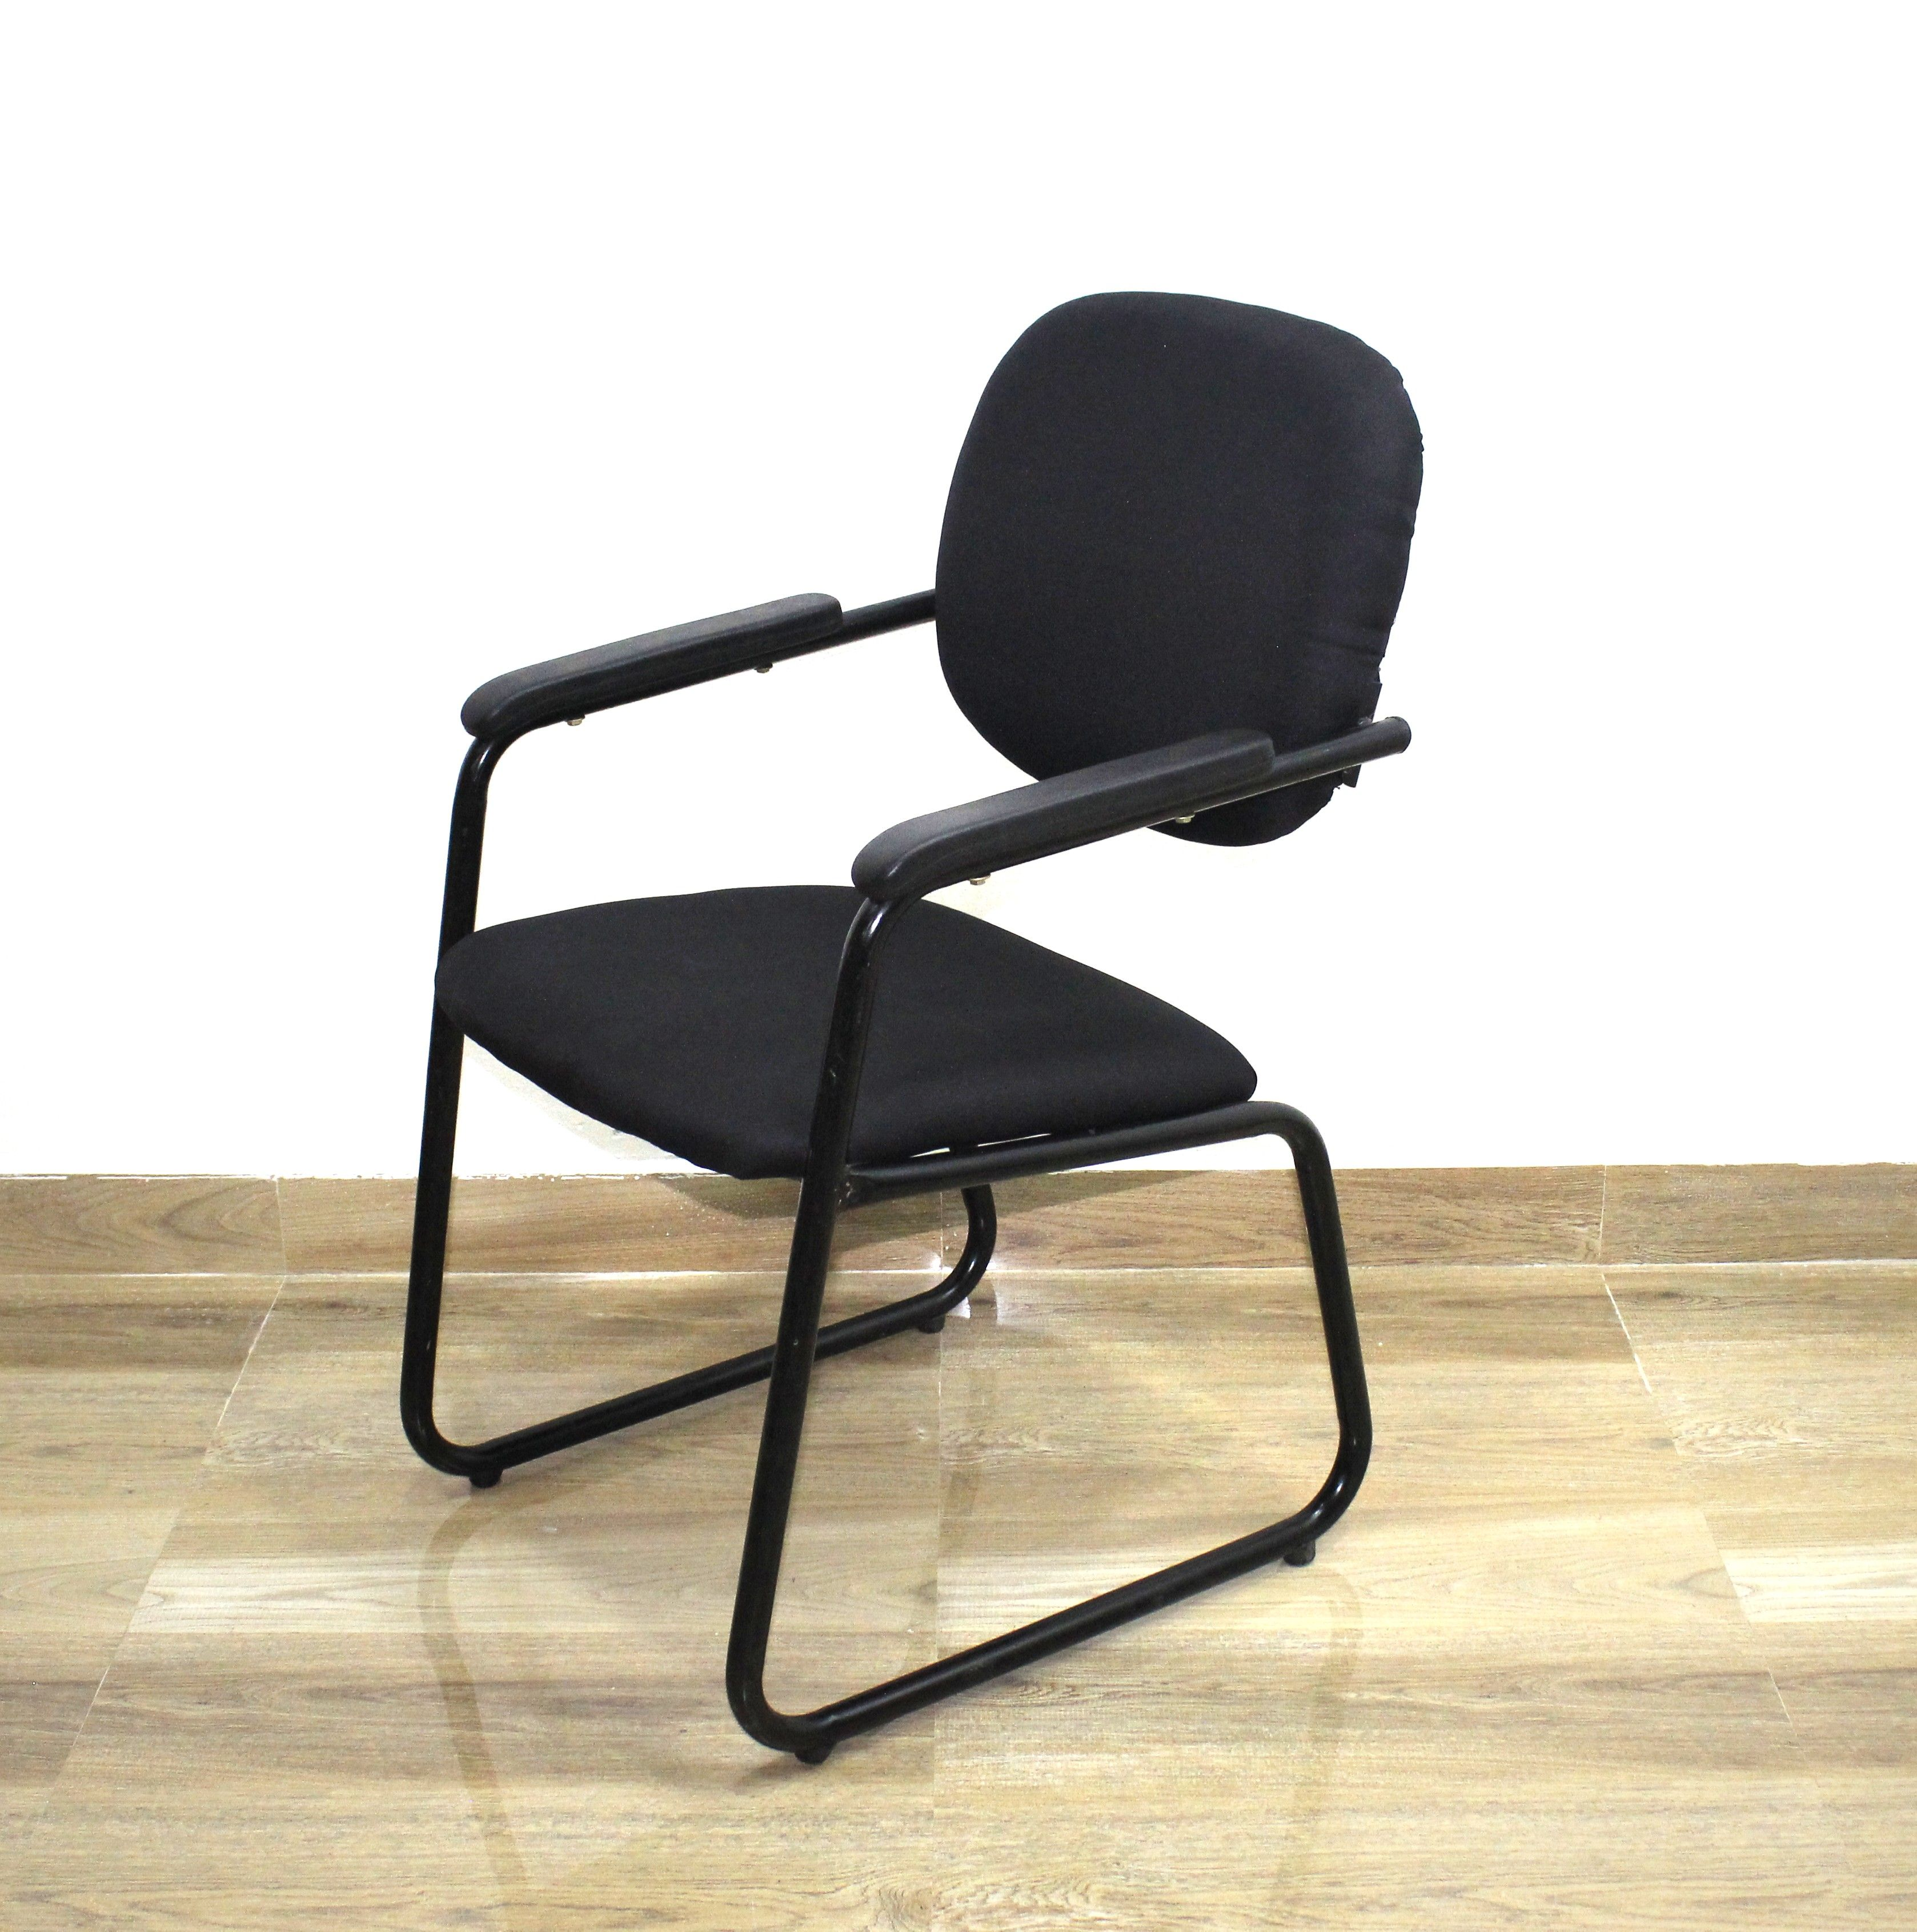 Arbour one stop online shop and largest training chairs